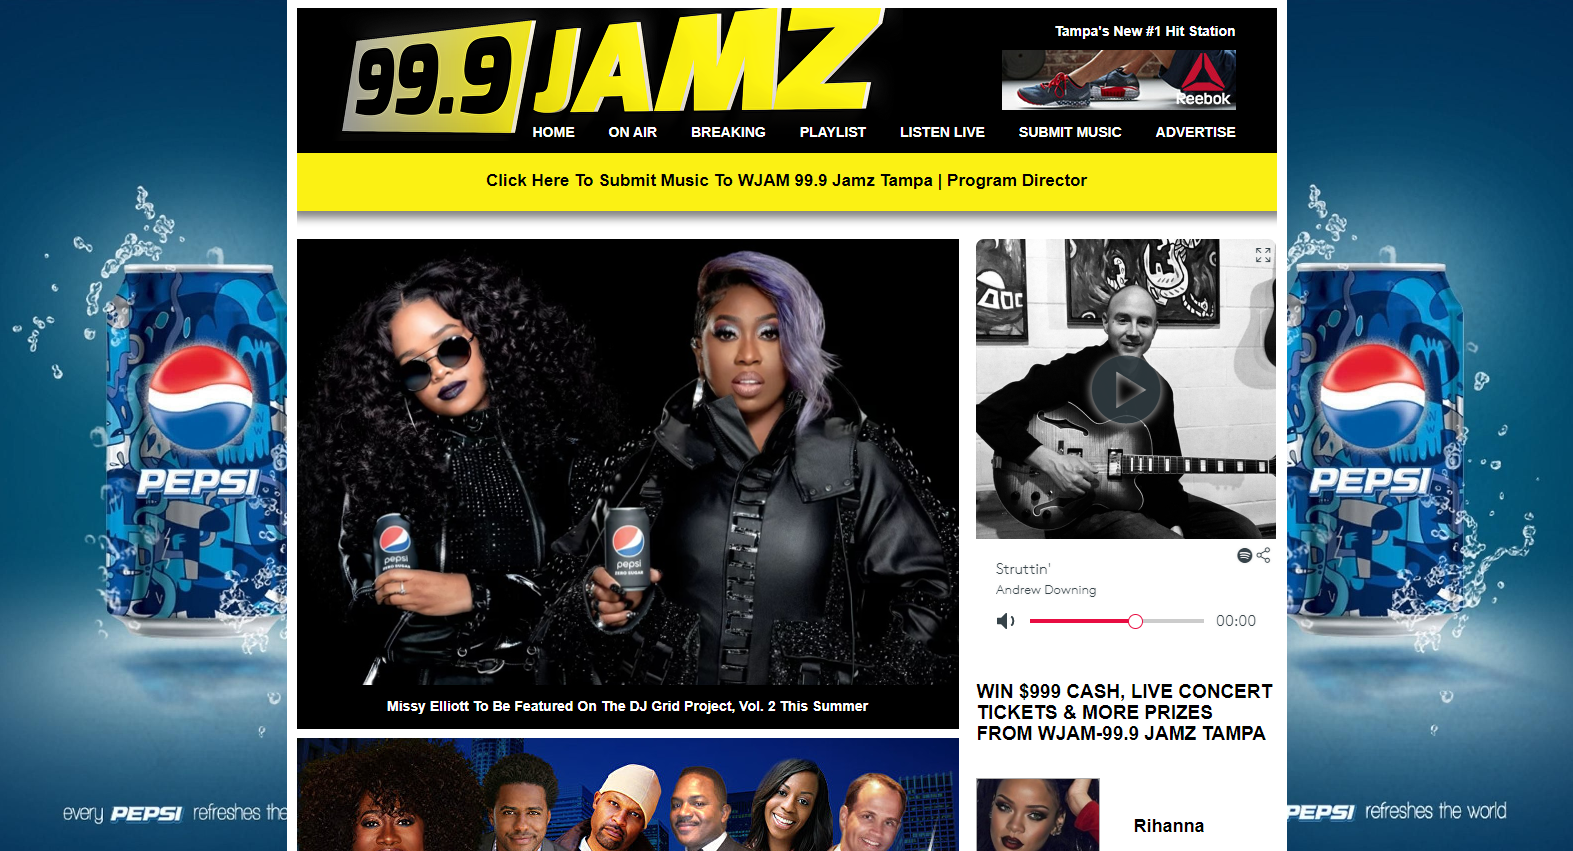 Promote Your Music On WJAM 99 JAMZ